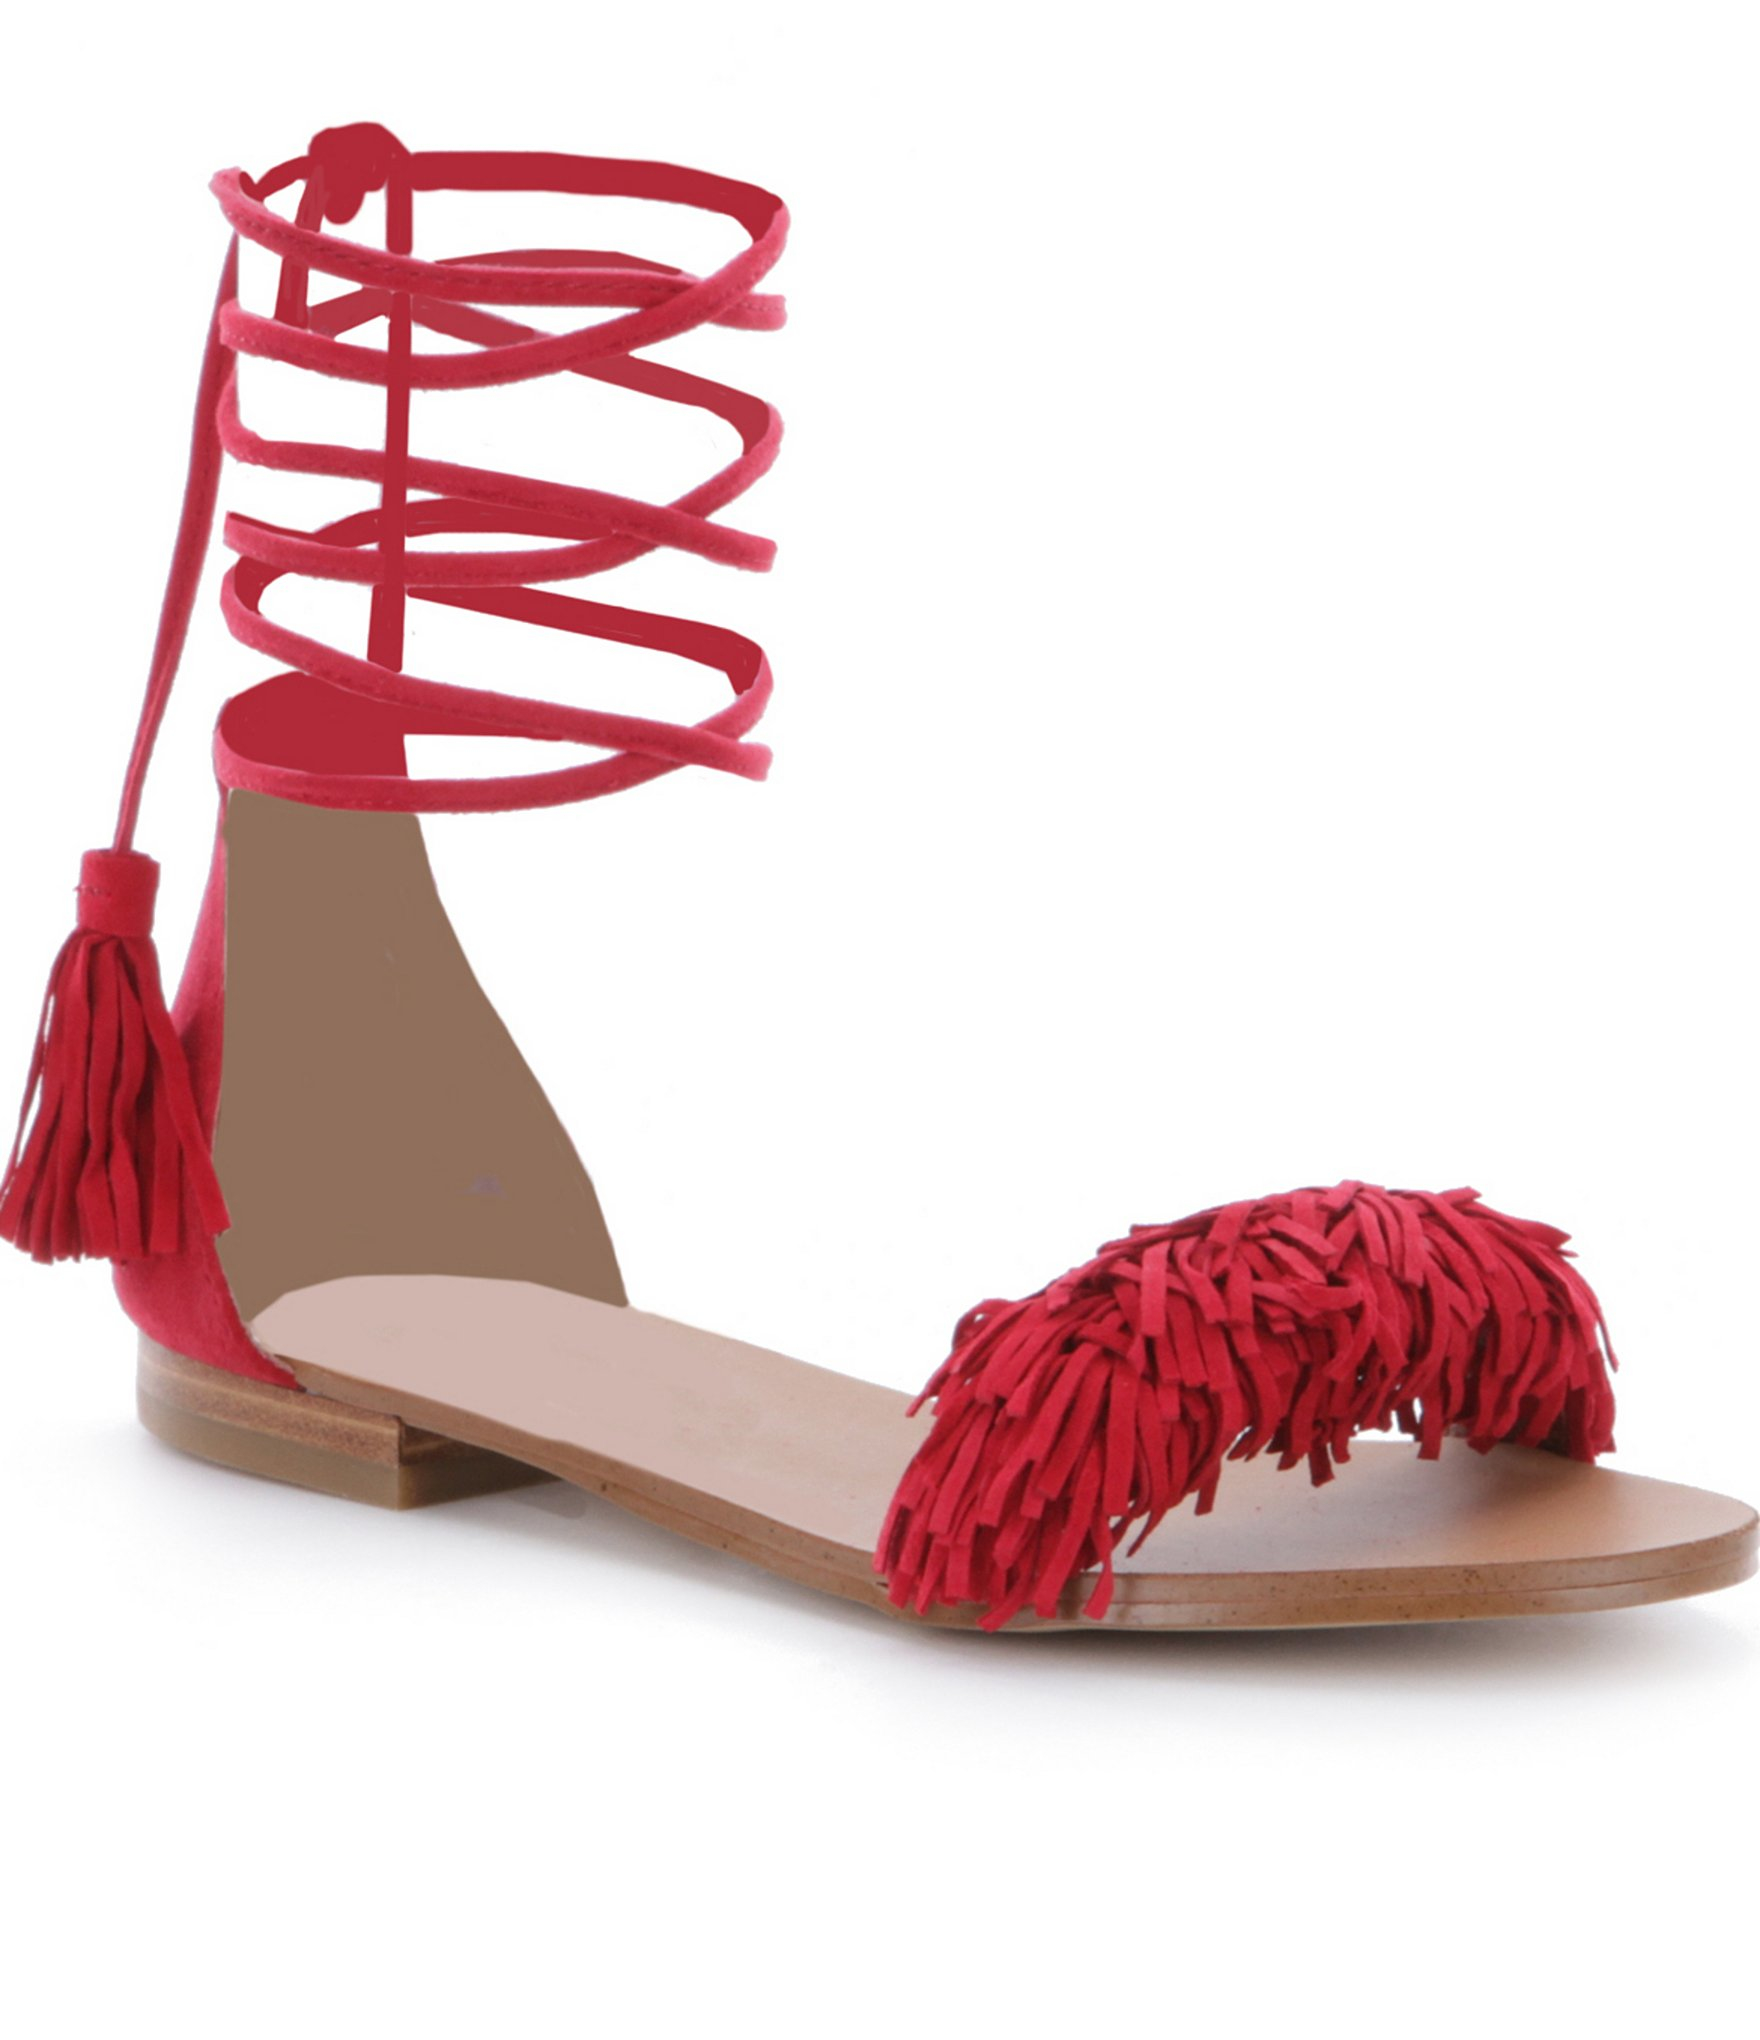 bd8833c61b5 Lyst - Steve Madden Sweetyy Lace-up Fringe Sandals in Red